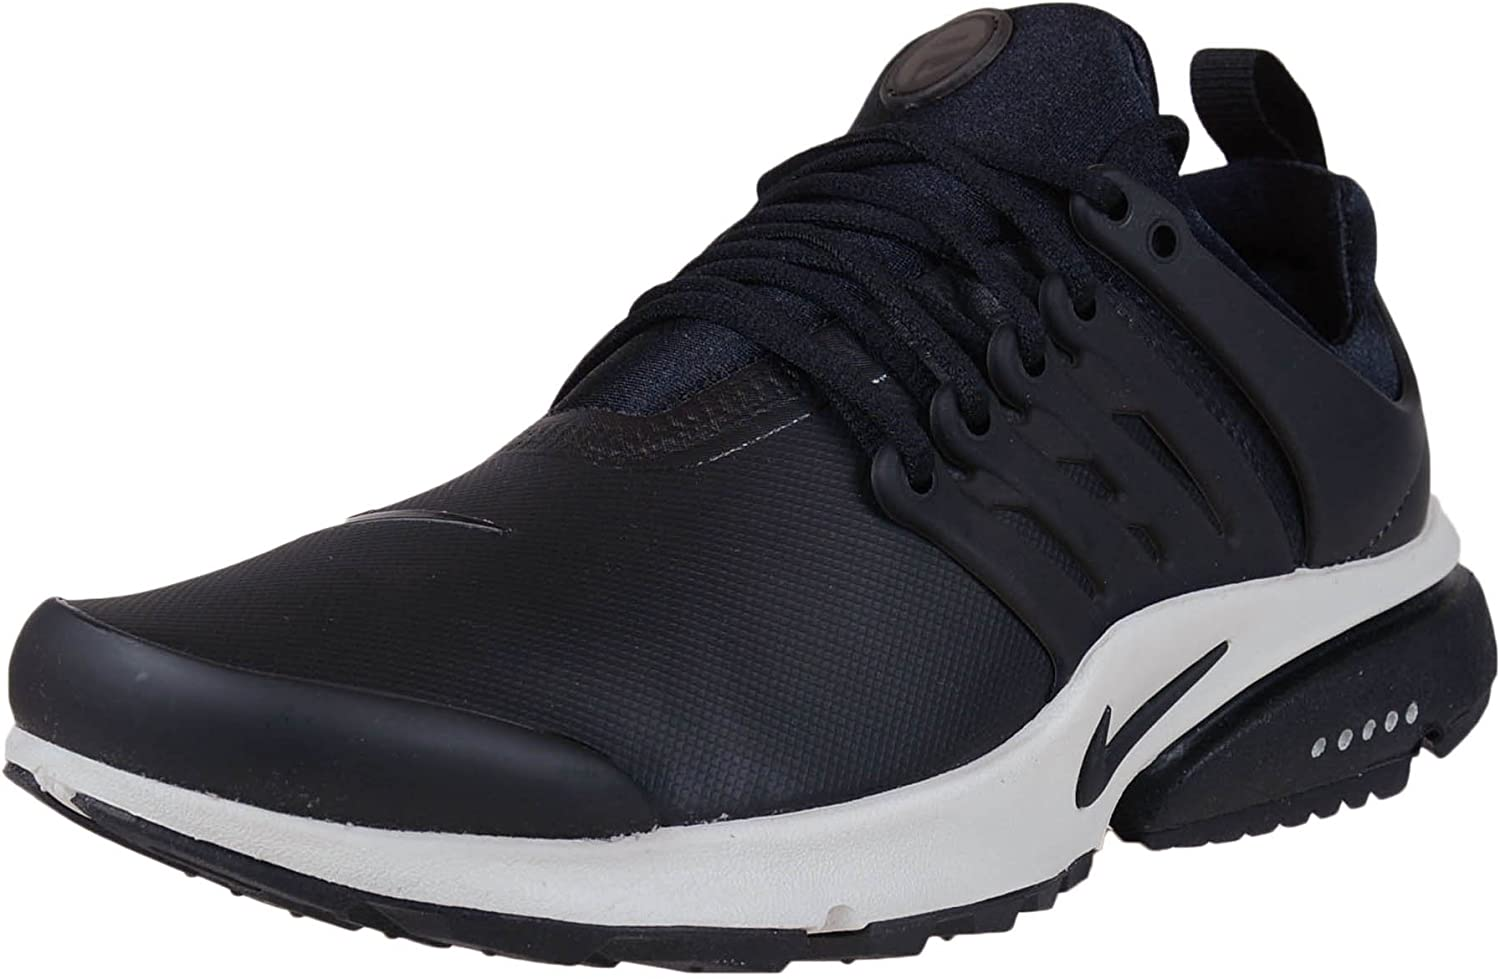 Nike Air Presto Utility Men's shoes